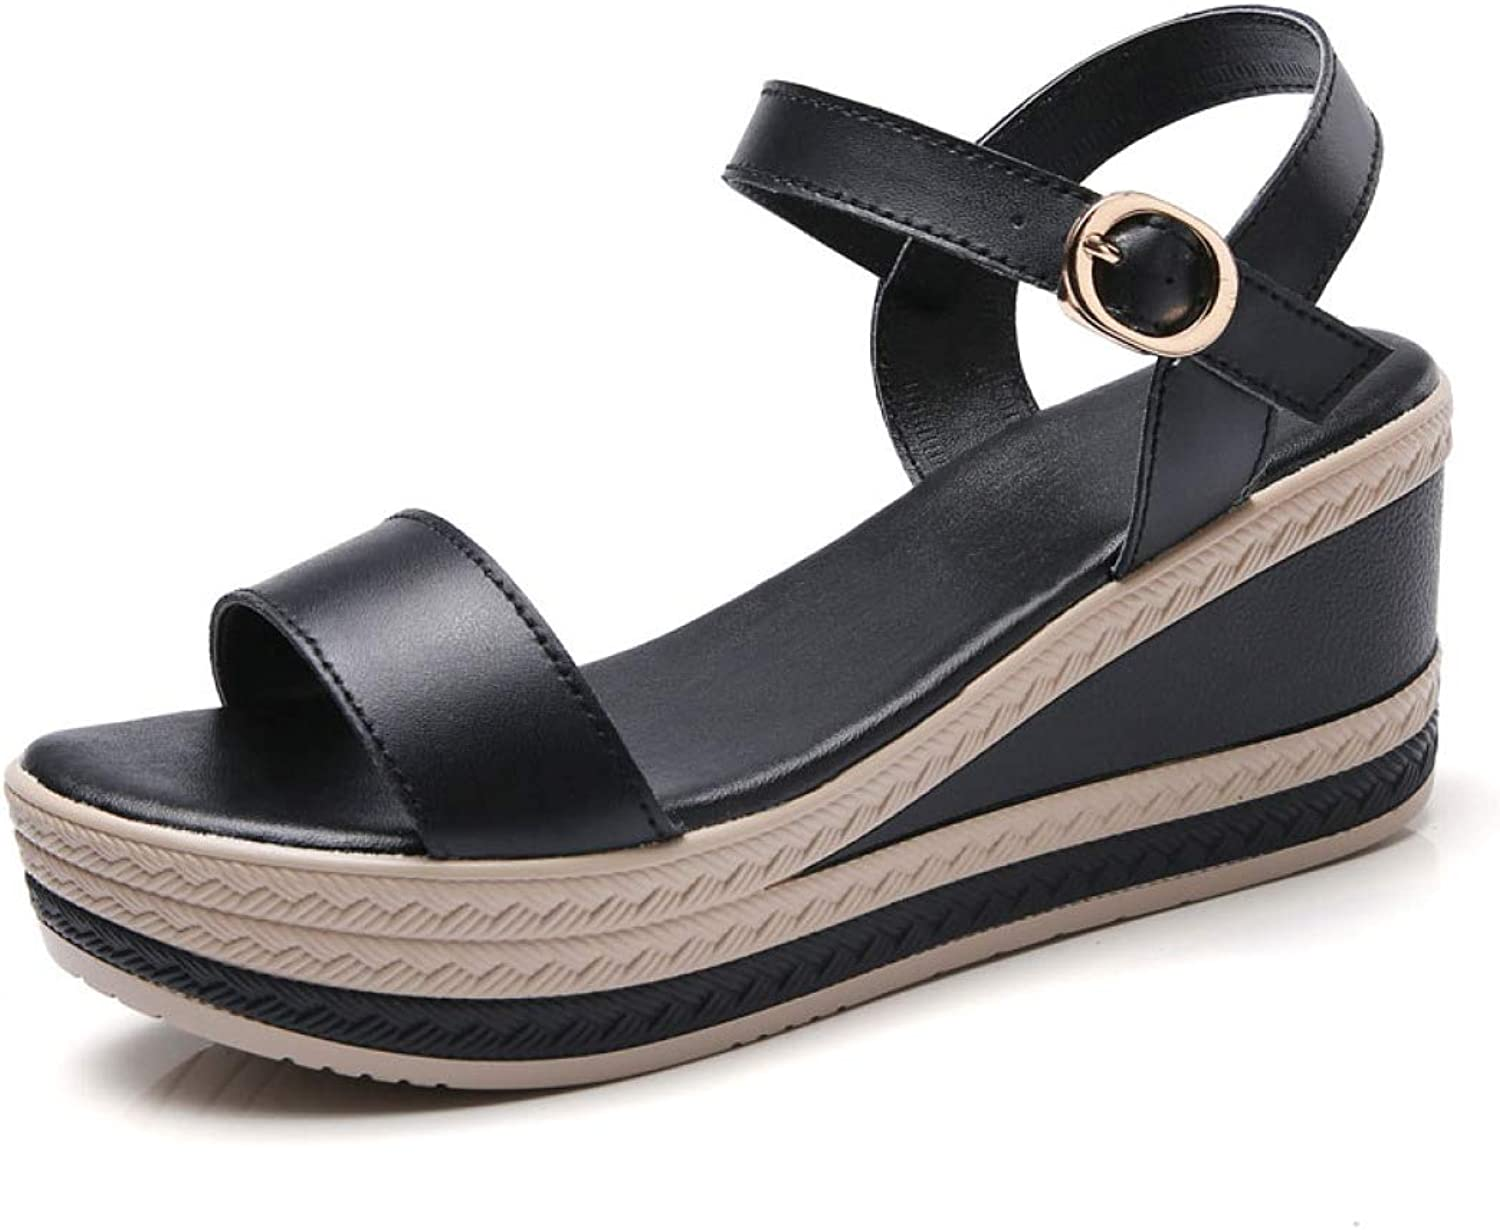 T-JULY Genuine Leather Women's Wedges Sandals Platform Open-Toe Beach shoes Ladies White Black Classic Footwear with Ankle Strap